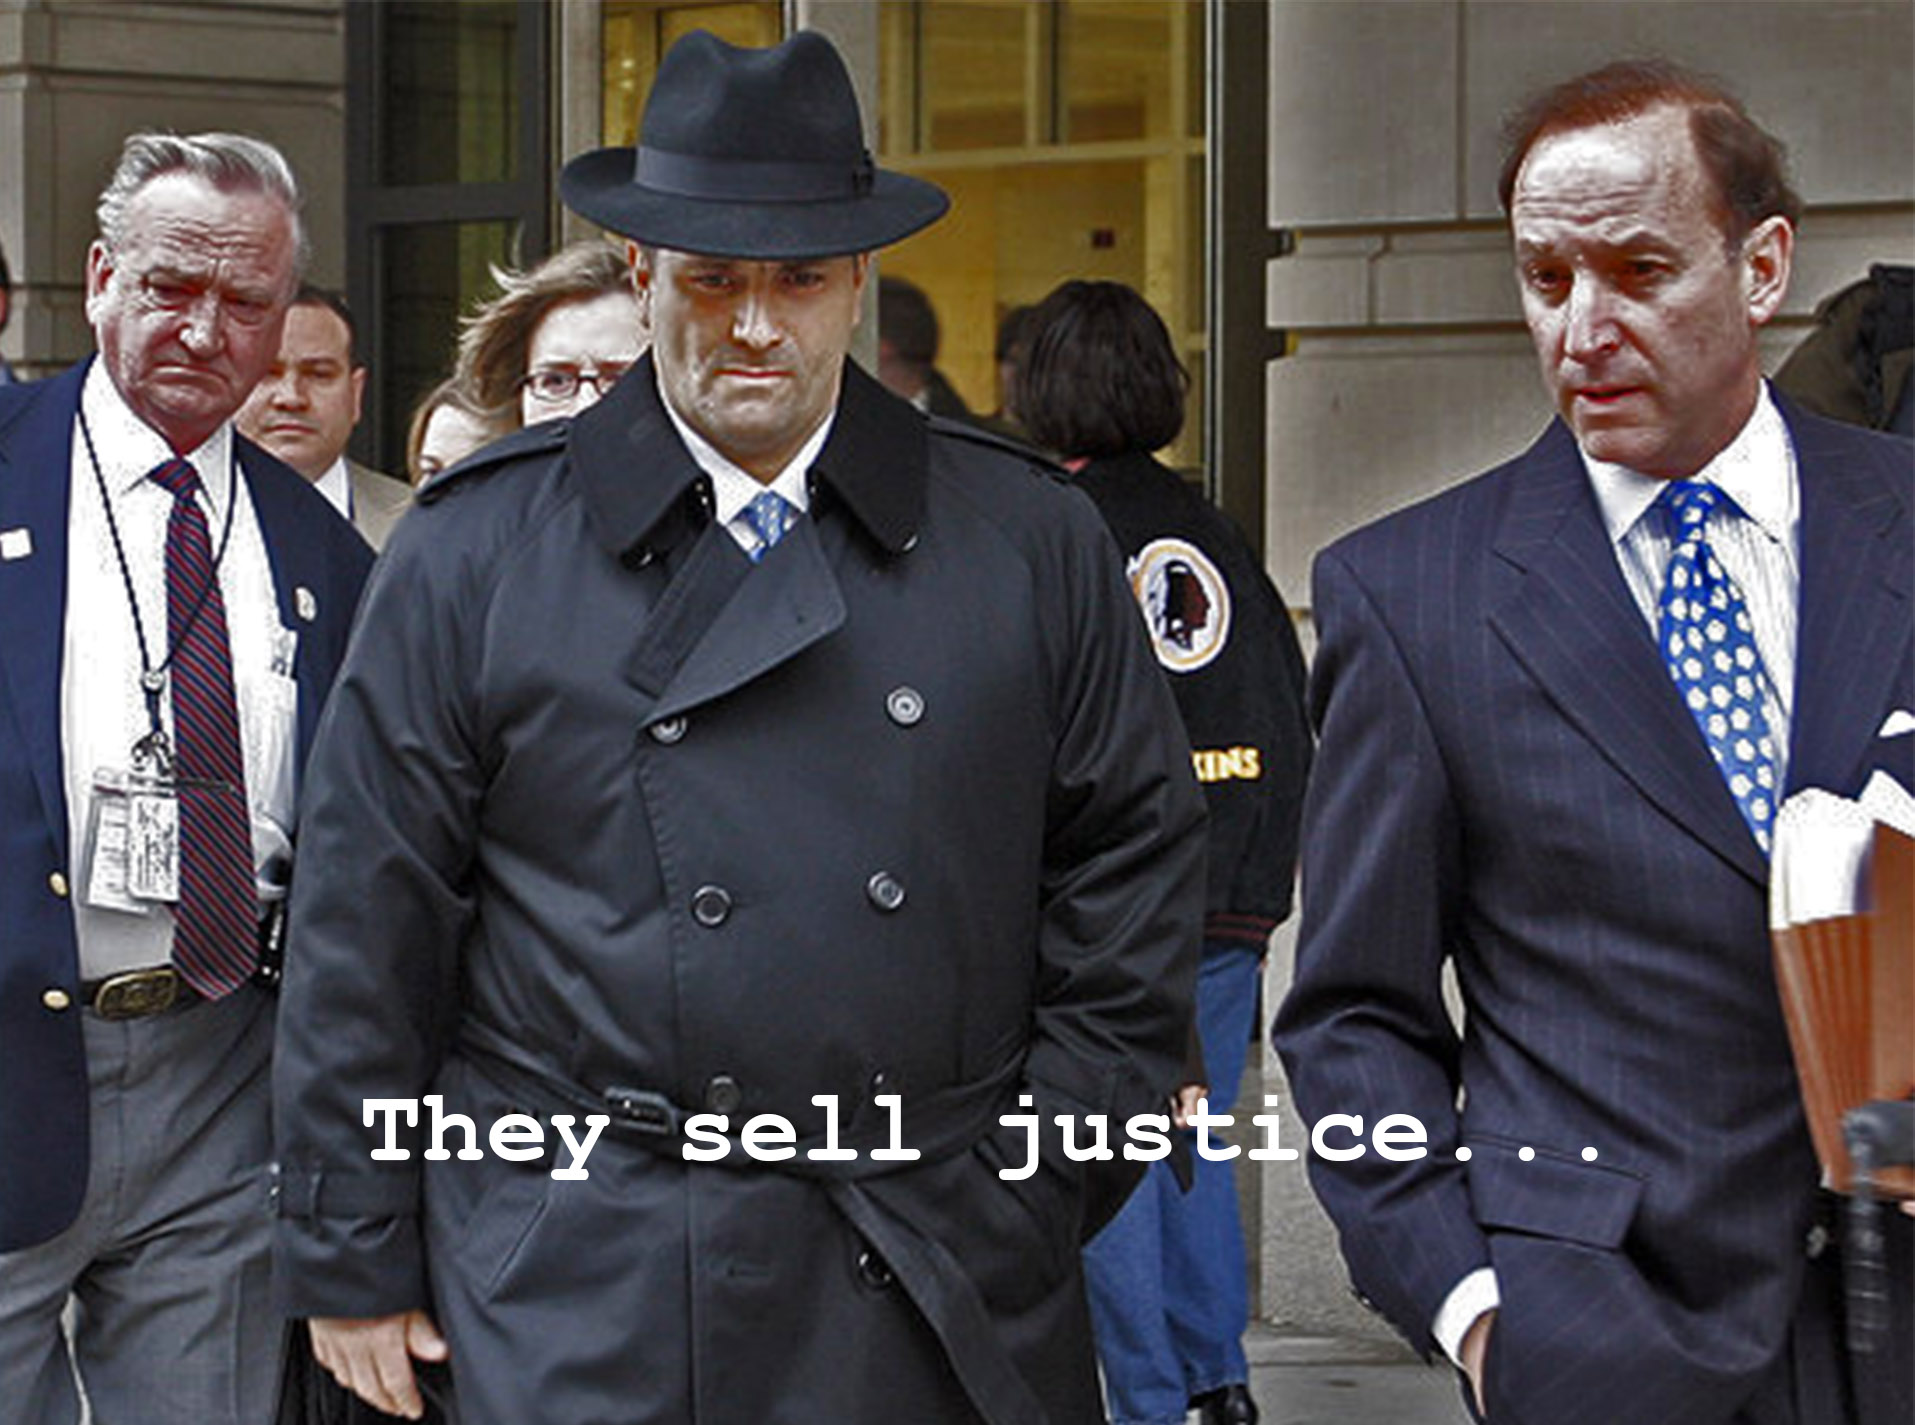 Jack Abramoff, center, leaves Federal Court in Washington Tuesday, Jan. 3, 2006. The once-powerful lobbyist pleaded guilty Tuesday to federal charges of conspiracy, tax evasion and mail fraud, agreeing to cooperate with prosecutors investigating influence peddling that has threatened powerful members of the U.S. Congress. At right is his attorney Abbe Lowell.    (AP Photo/Gerald Herbert)